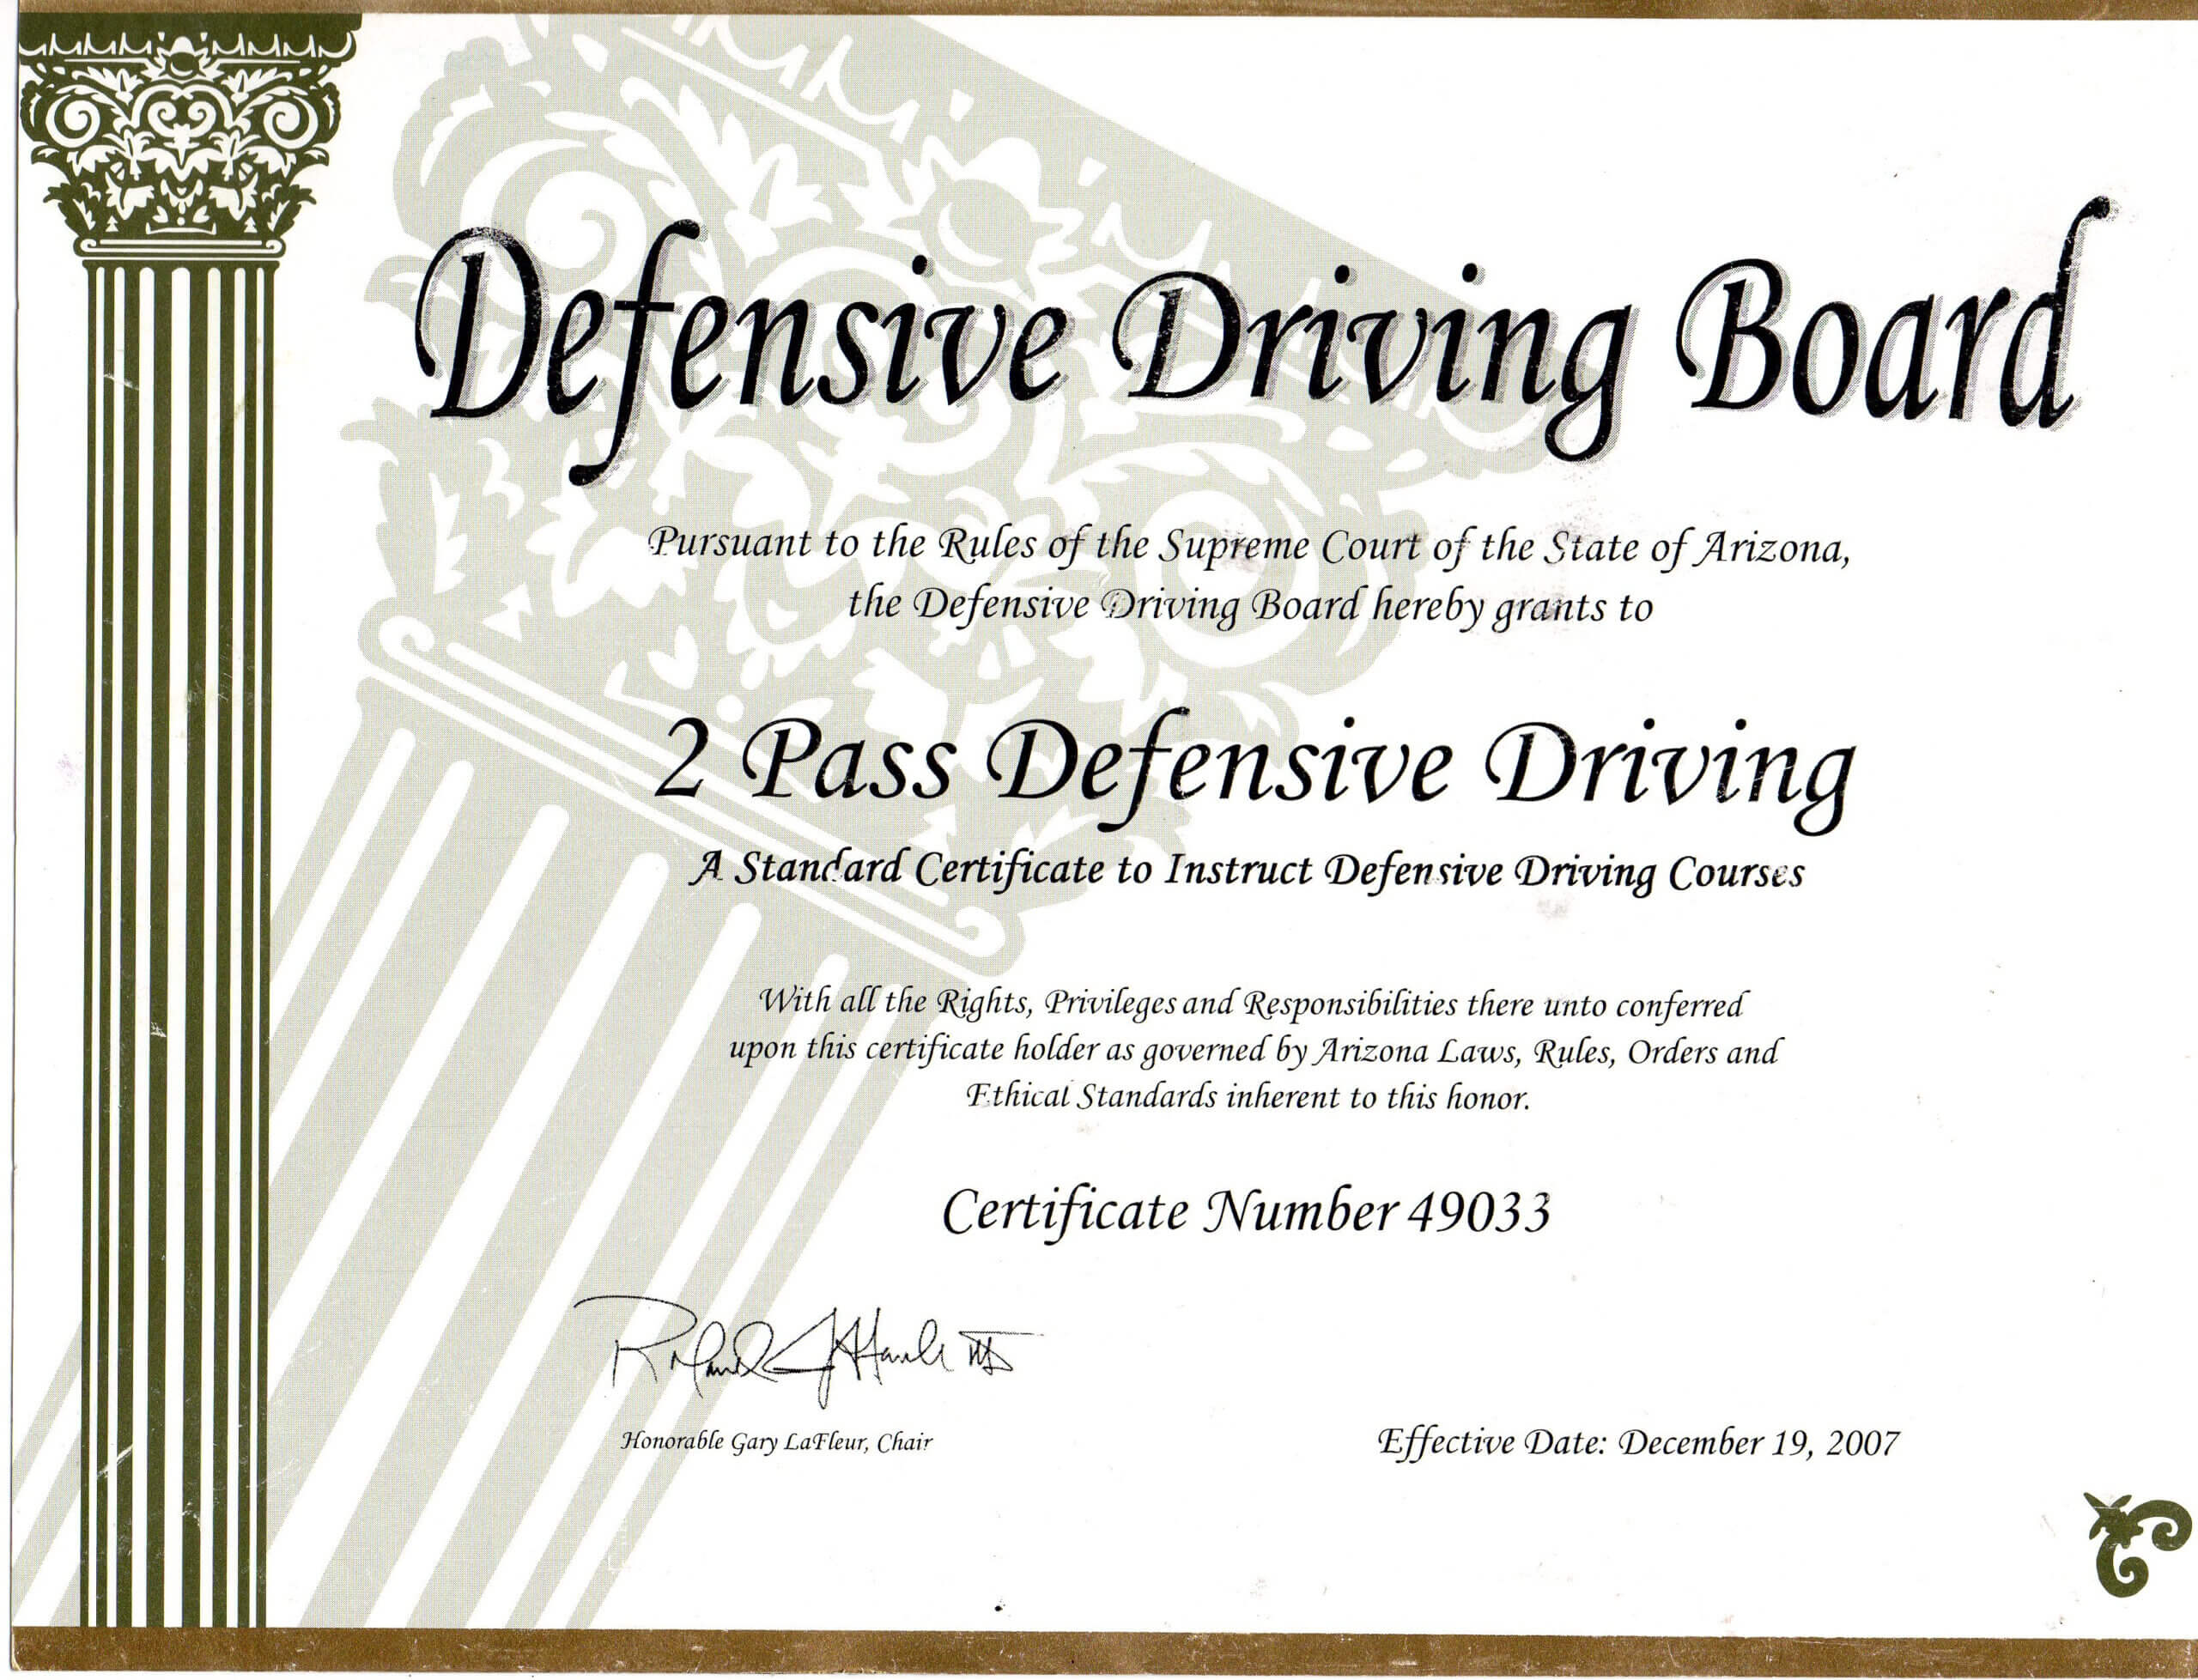 Safe Driving Certificate Template ] - Some Appreciation With Safe Driving Certificate Template